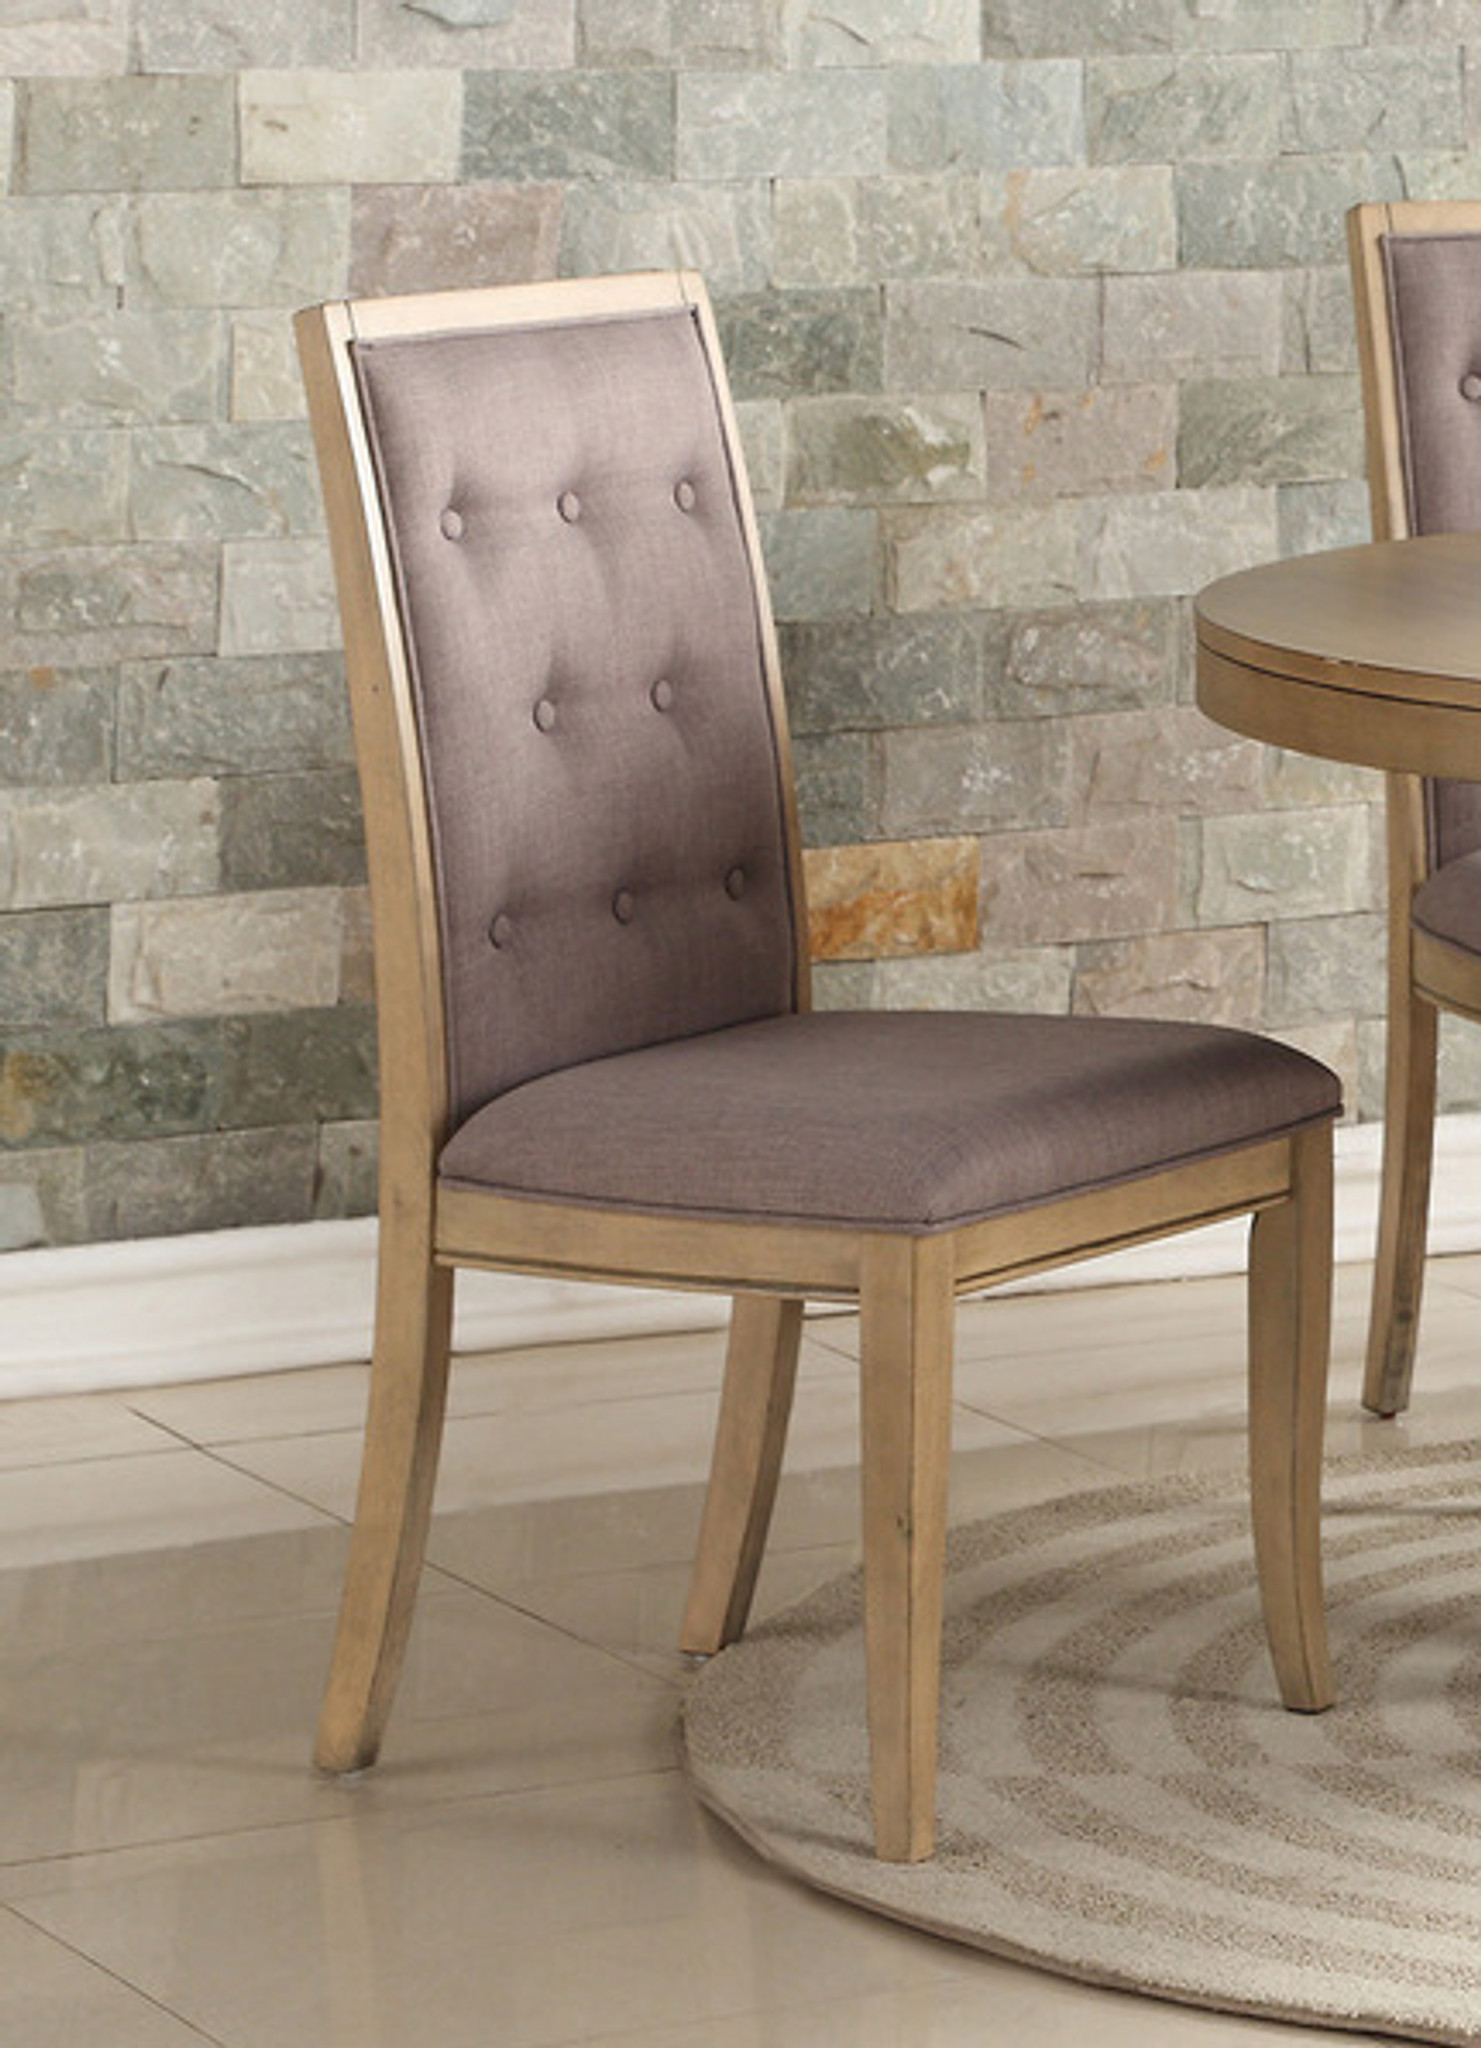 Pleasing 2Pcs Natural Wood Dining Chair Set Ibusinesslaw Wood Chair Design Ideas Ibusinesslaworg